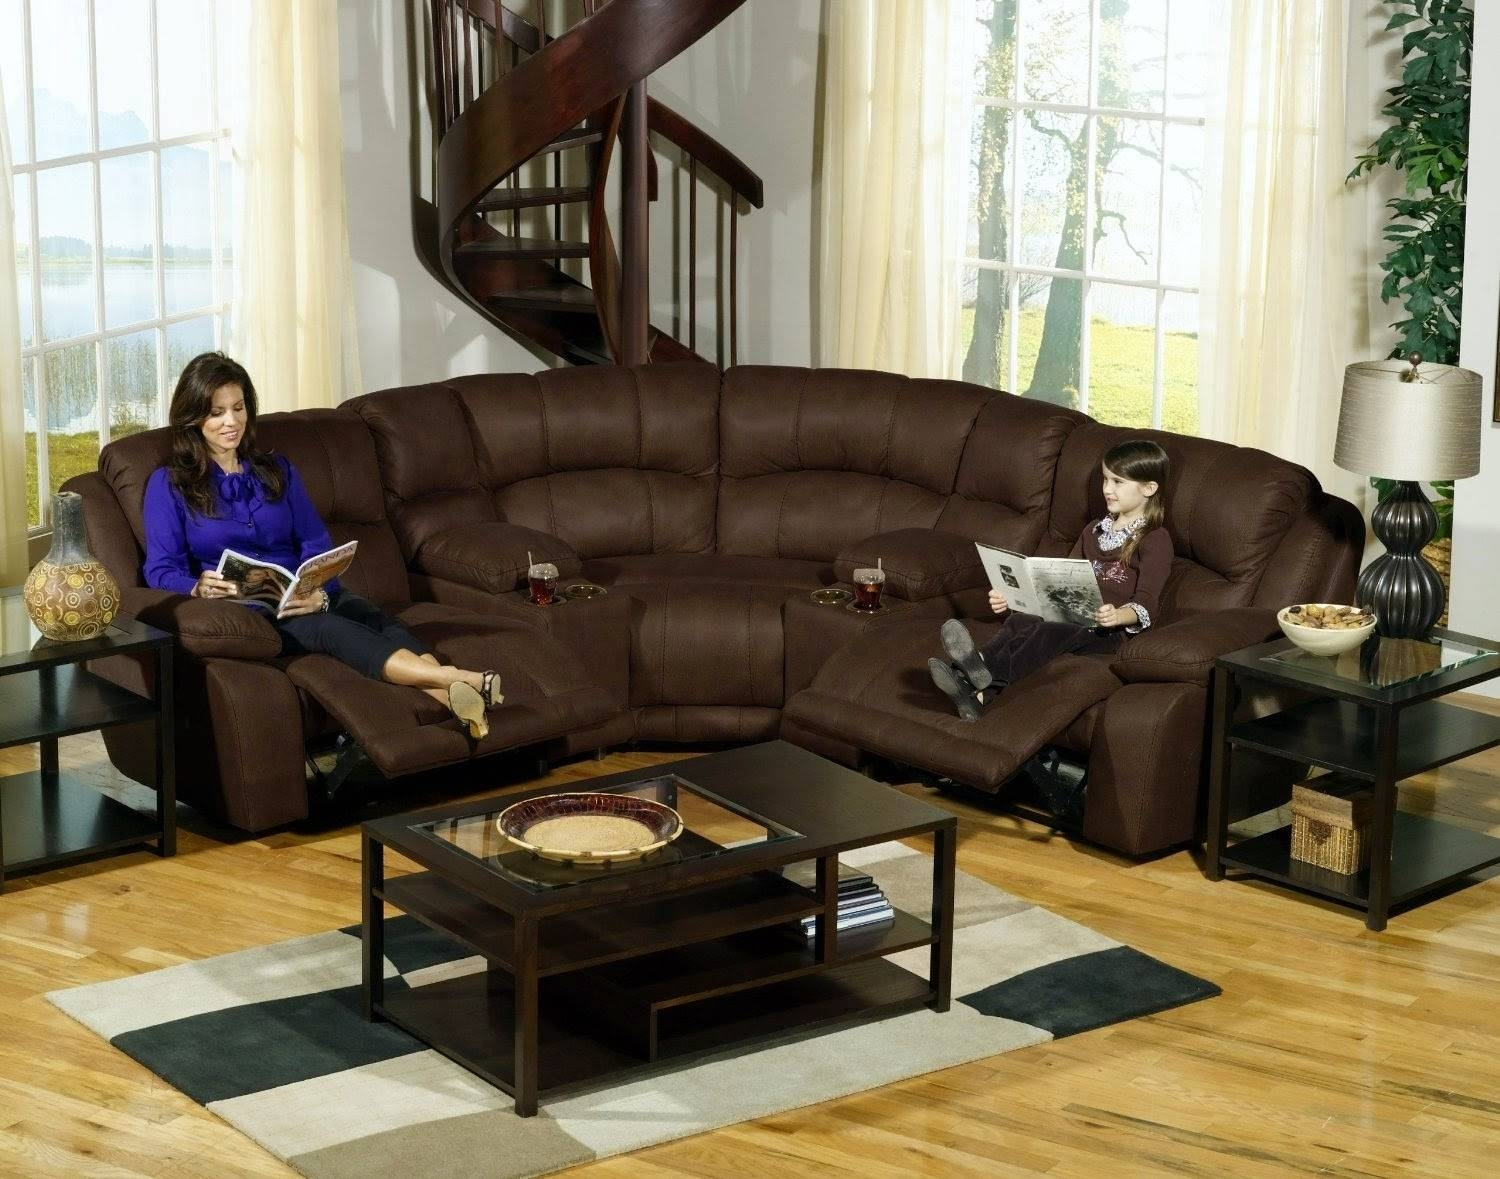 12 Best Of Berkline Sectional Sofa throughout Berkline Sectional Sofa (Image 2 of 30)